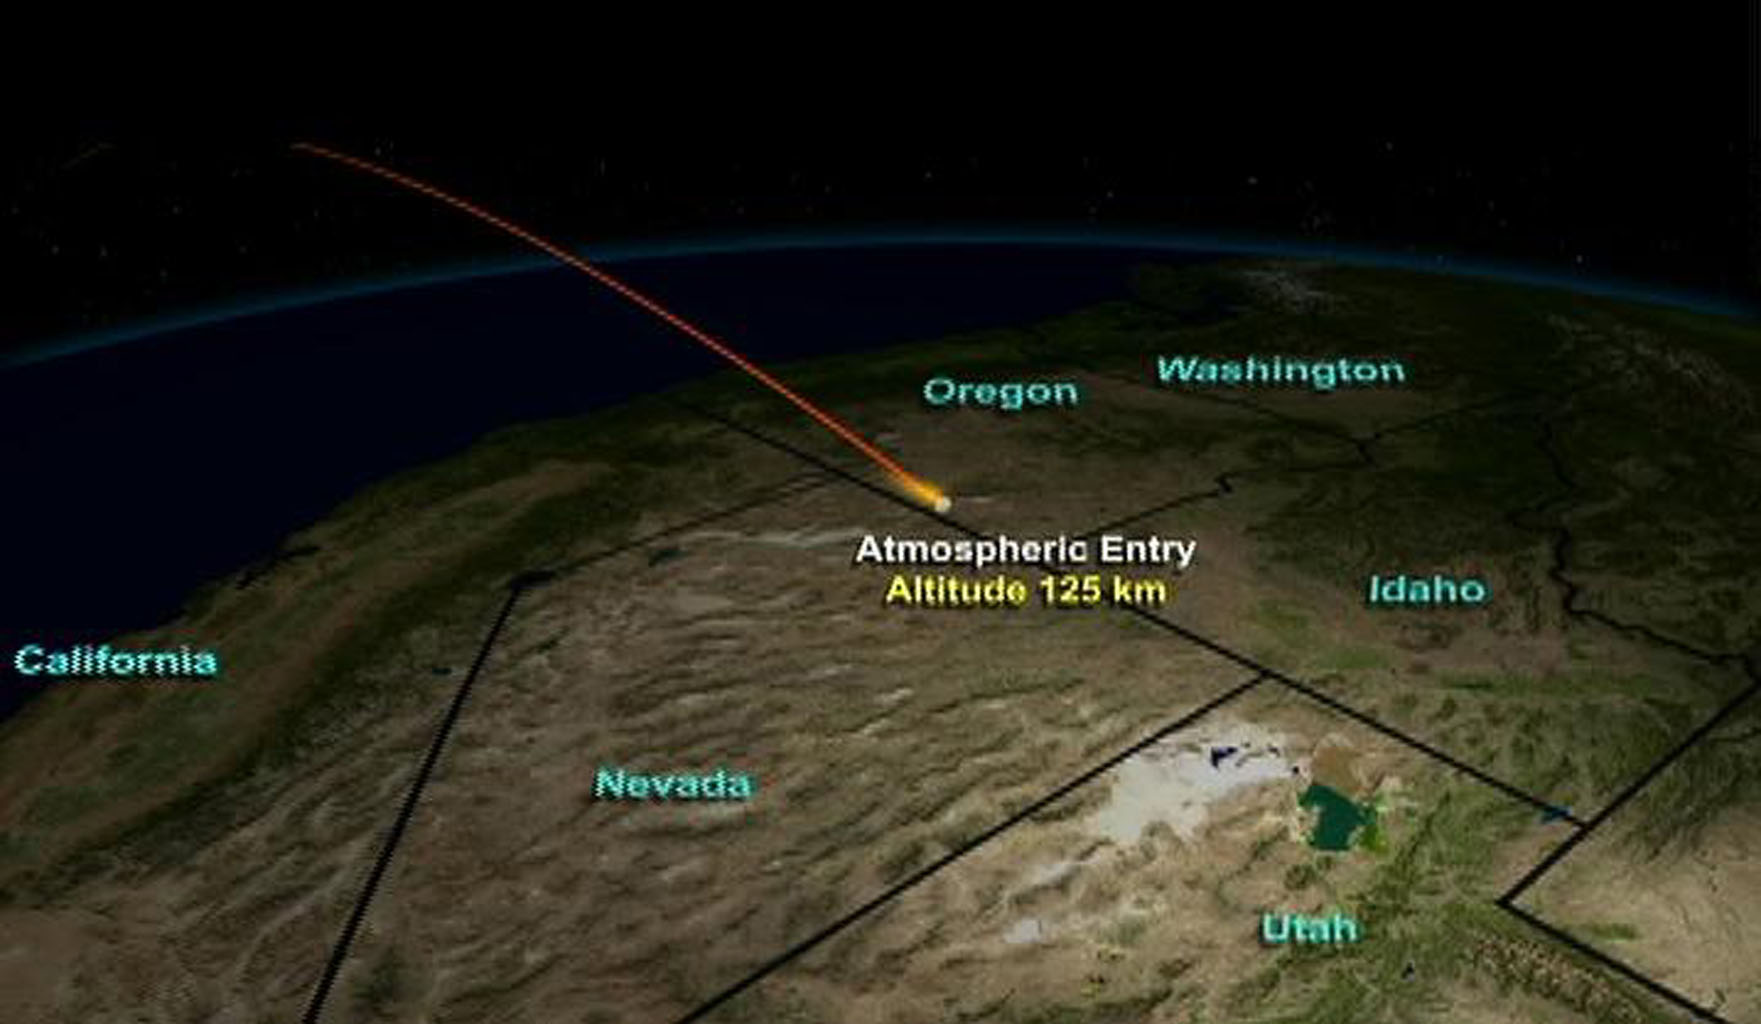 This animation illustrates the path the Stardust return capsule will follow once it enters Earth's atmosphere.